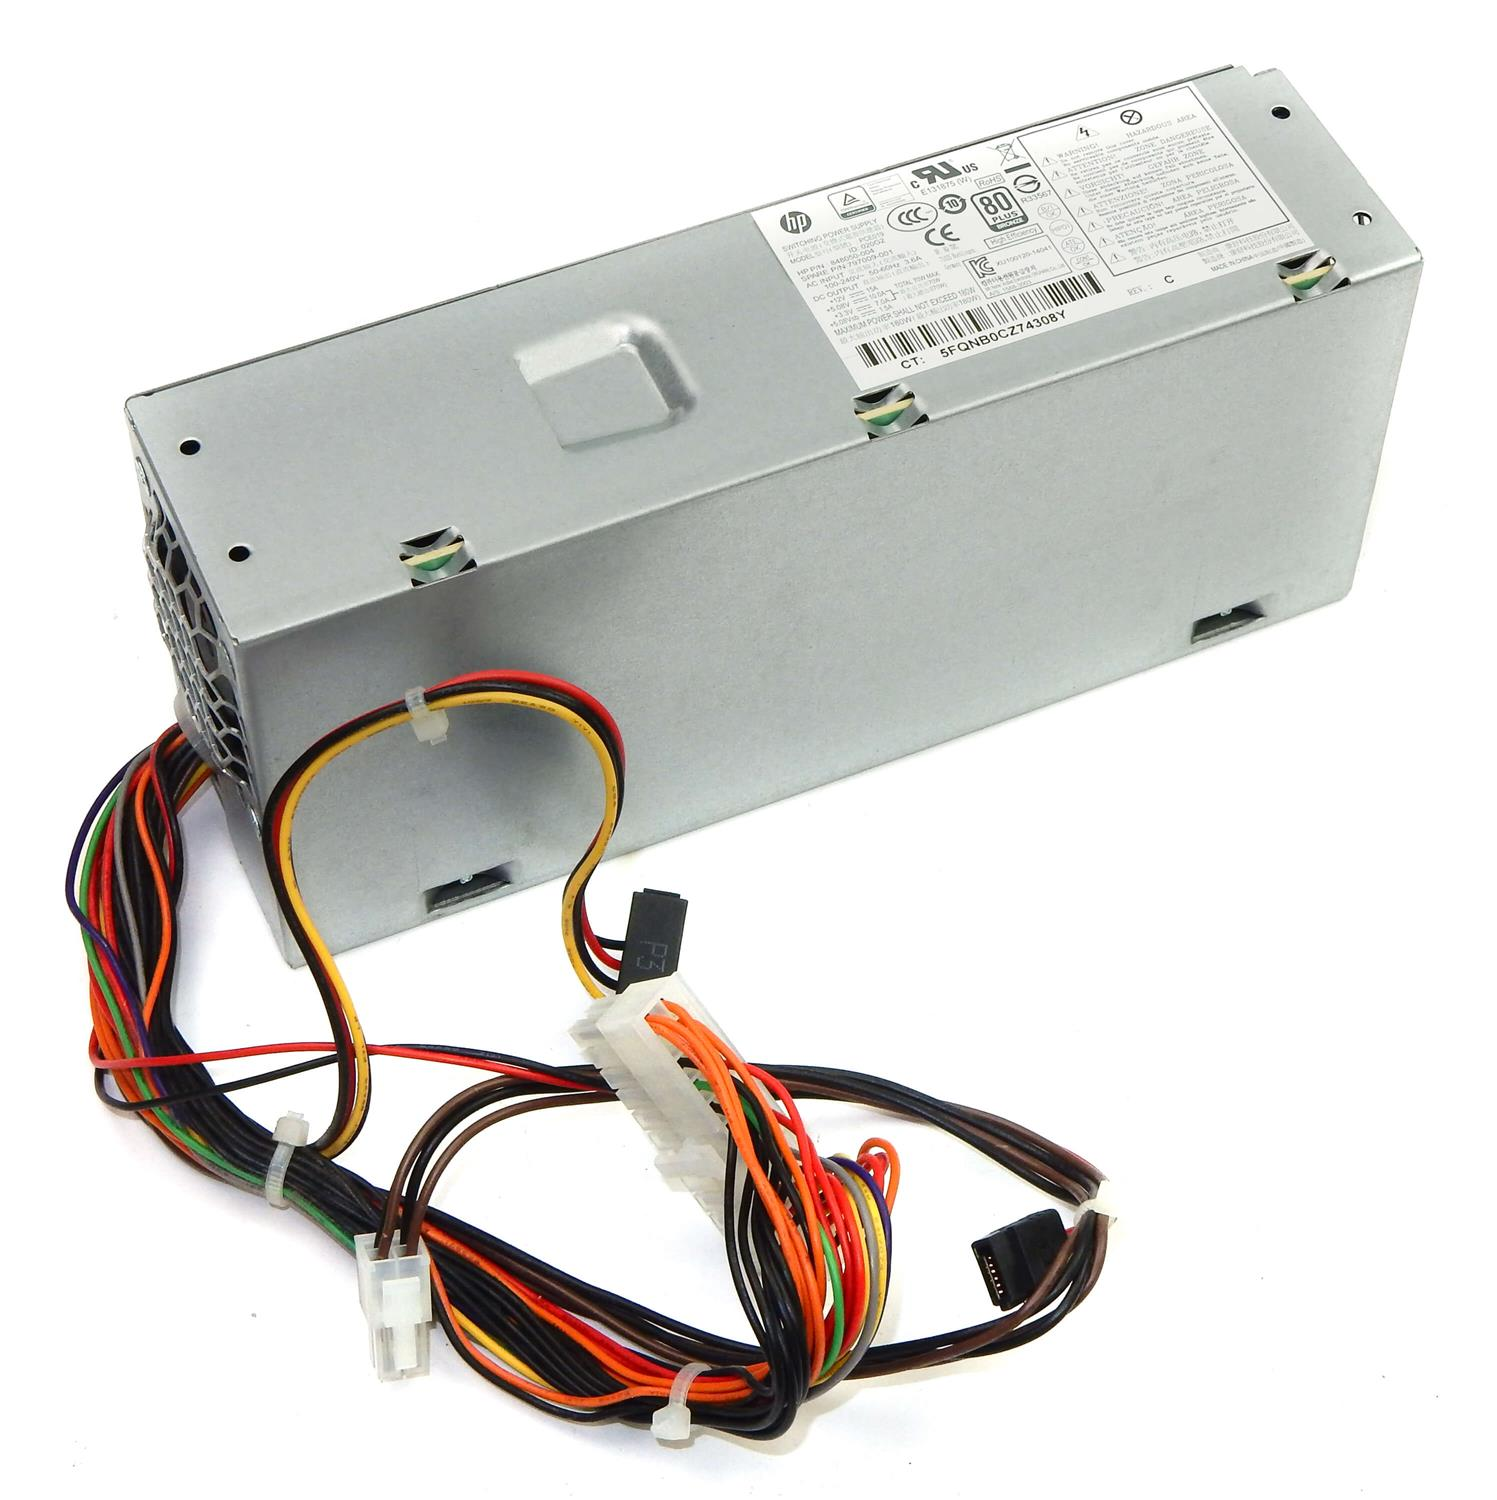 HP Prodesk 400 G2.5 SFF 180W Power Supply PSU 848050-001 PCE019 (USED)